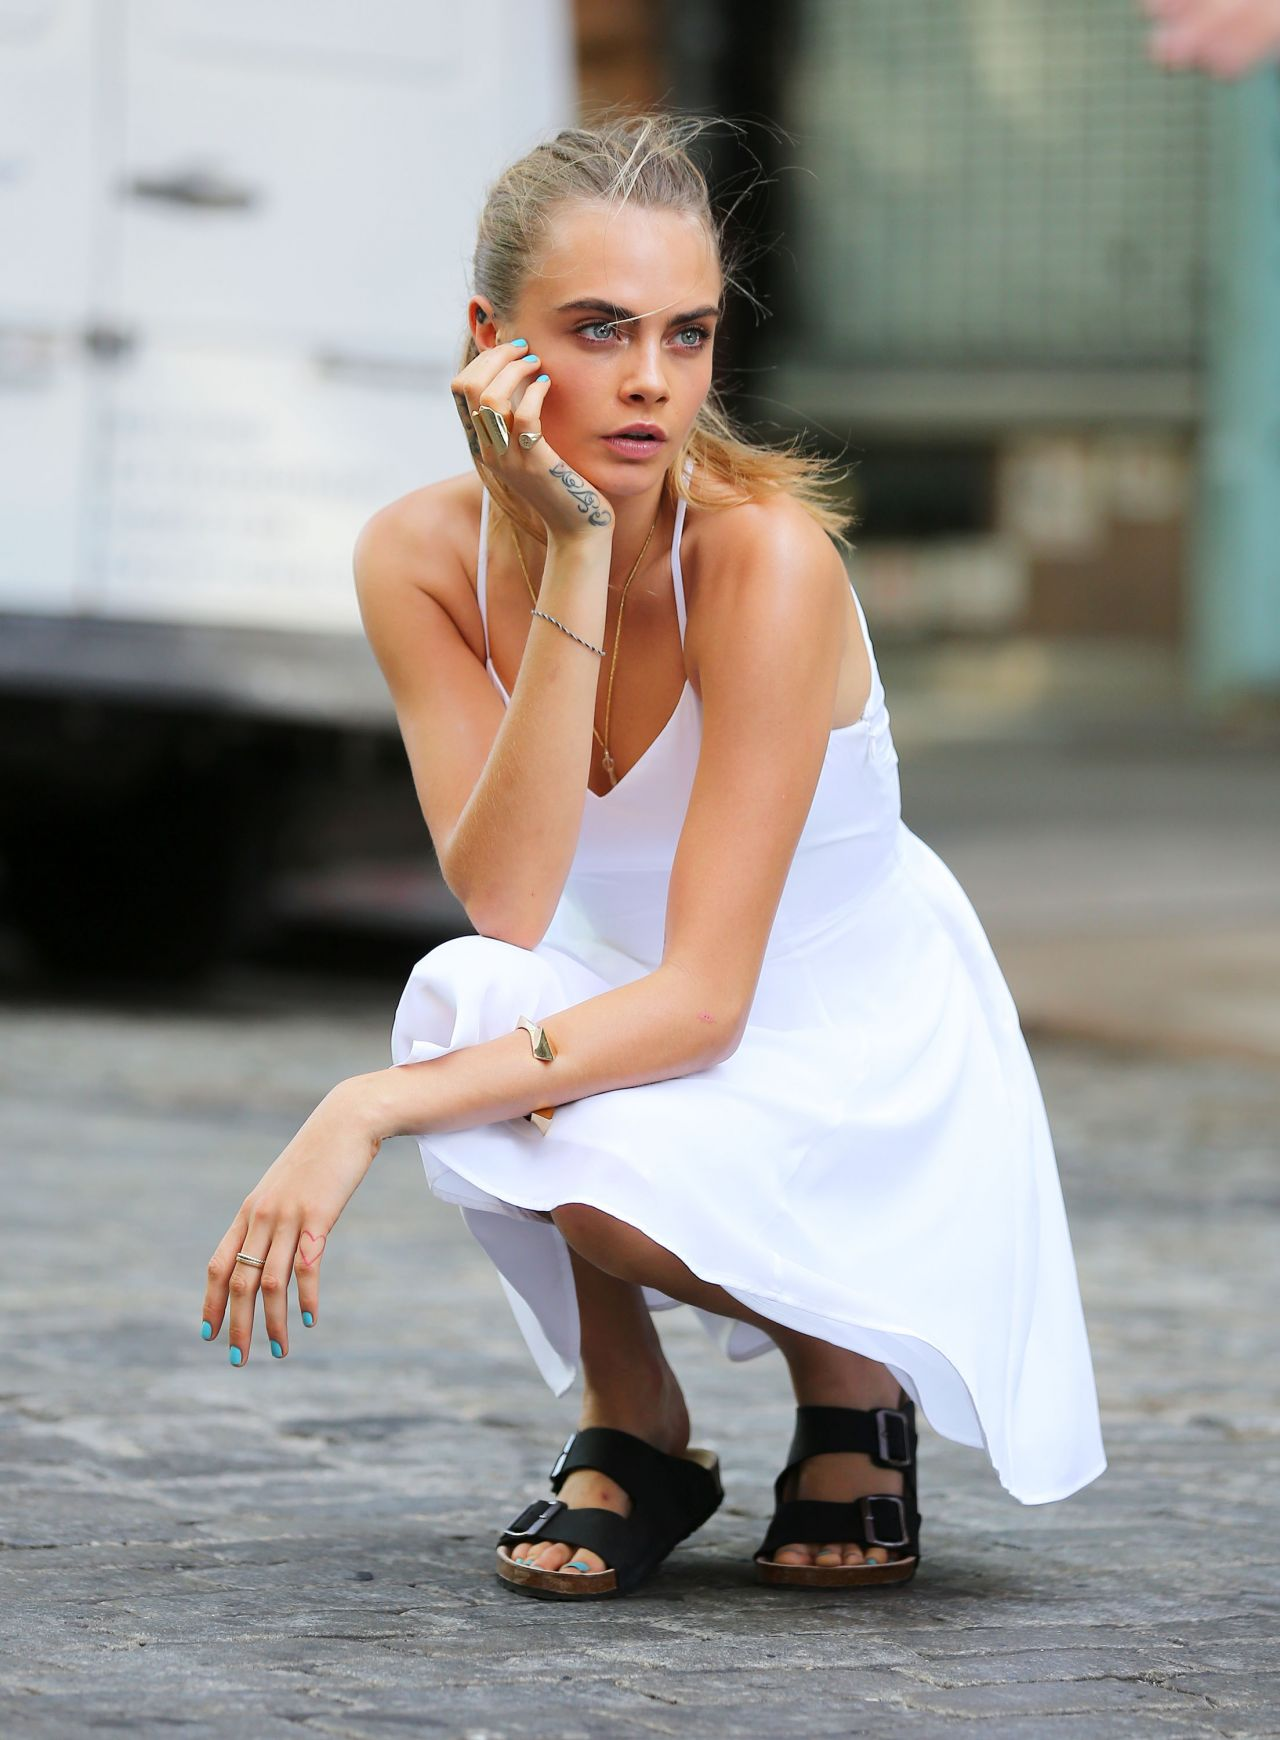 Cara Delevingne on Location for a Photoshoot in Noho, NYC - September 2014